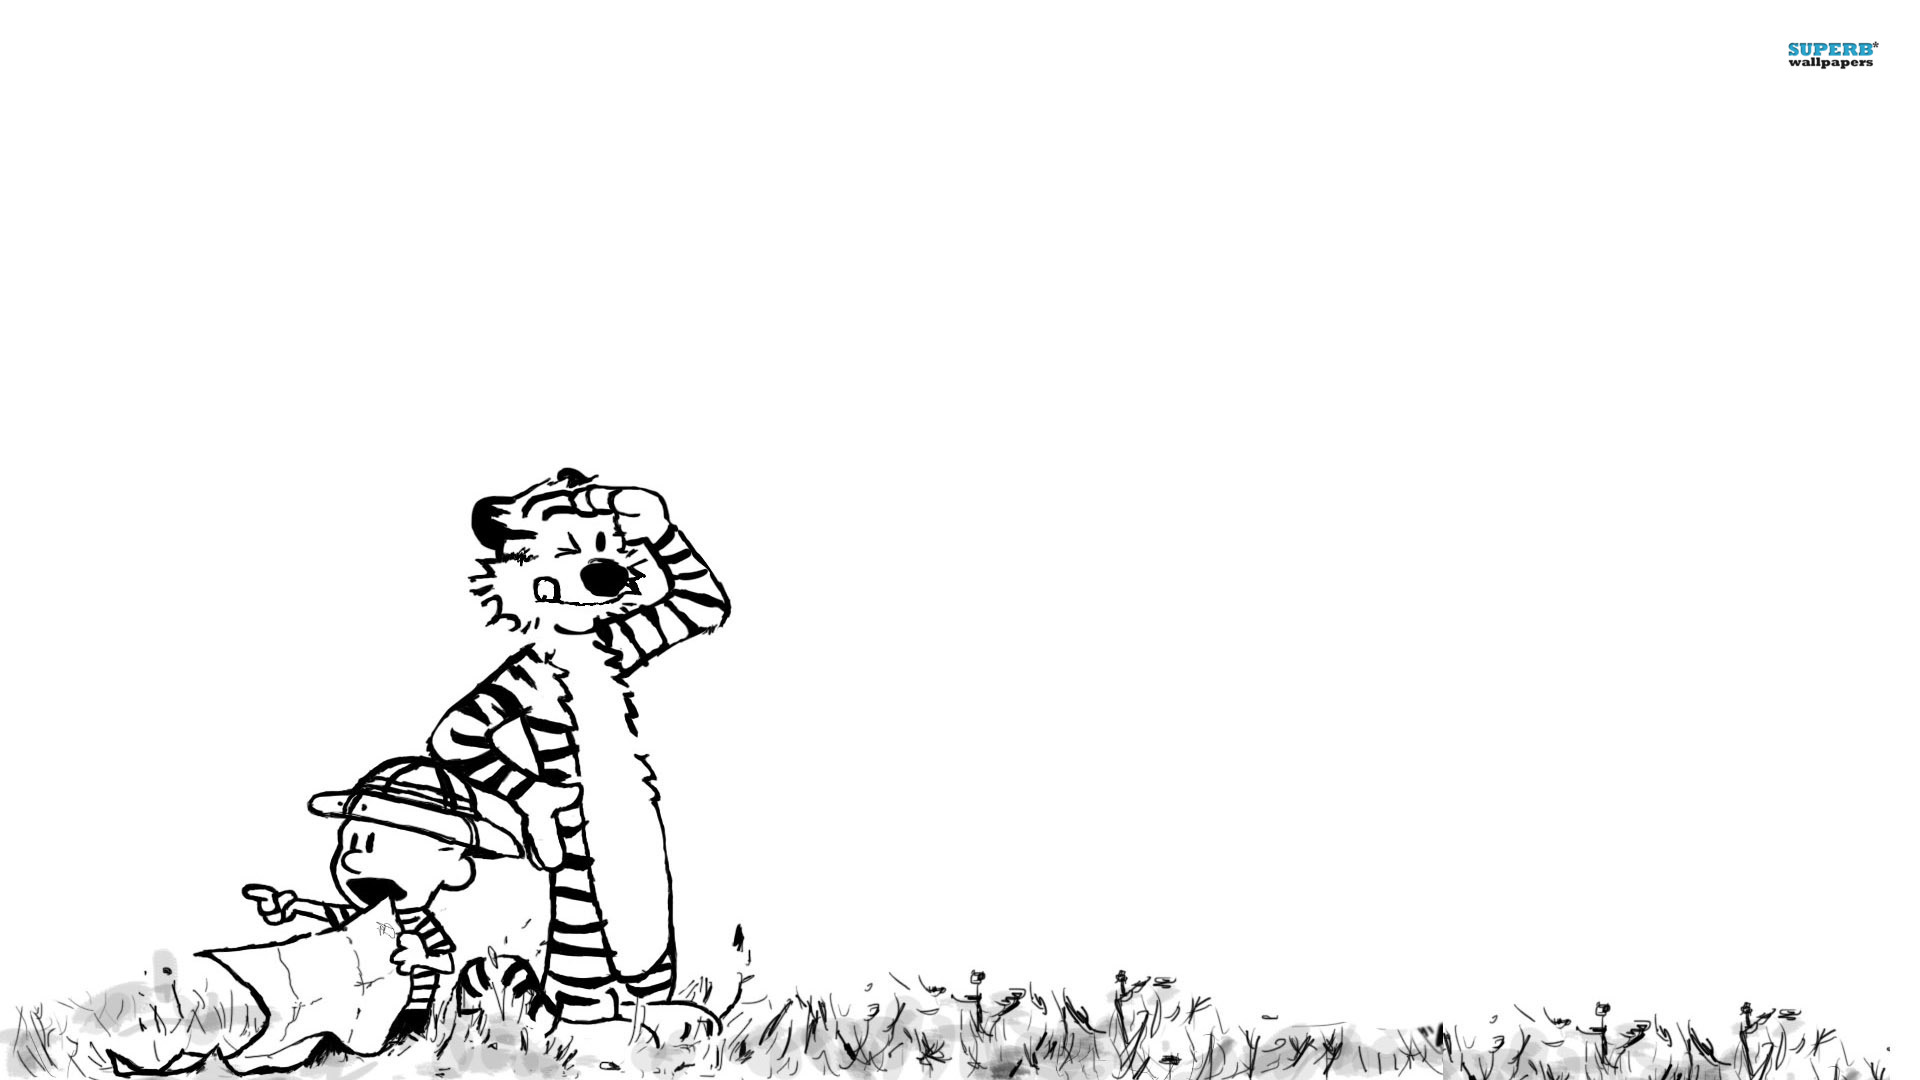 13 lessons on indian politics from calvin and hobbes